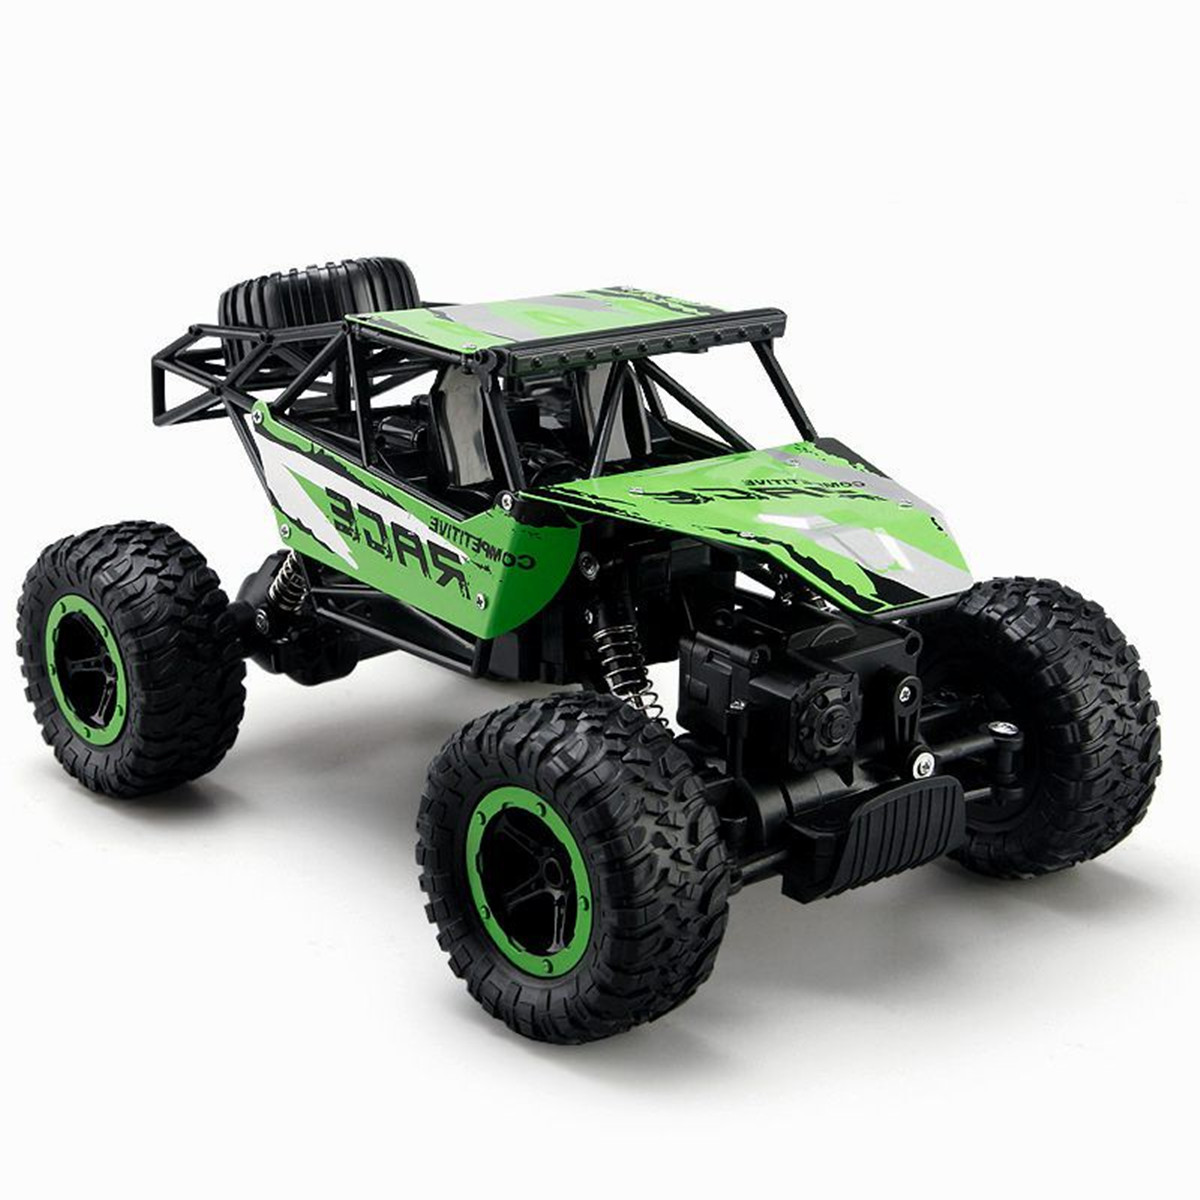 2-4G-Remote-Control-Car-RC-Electric-High-Speed-Offroad-Truck-Vehicle-Crawler